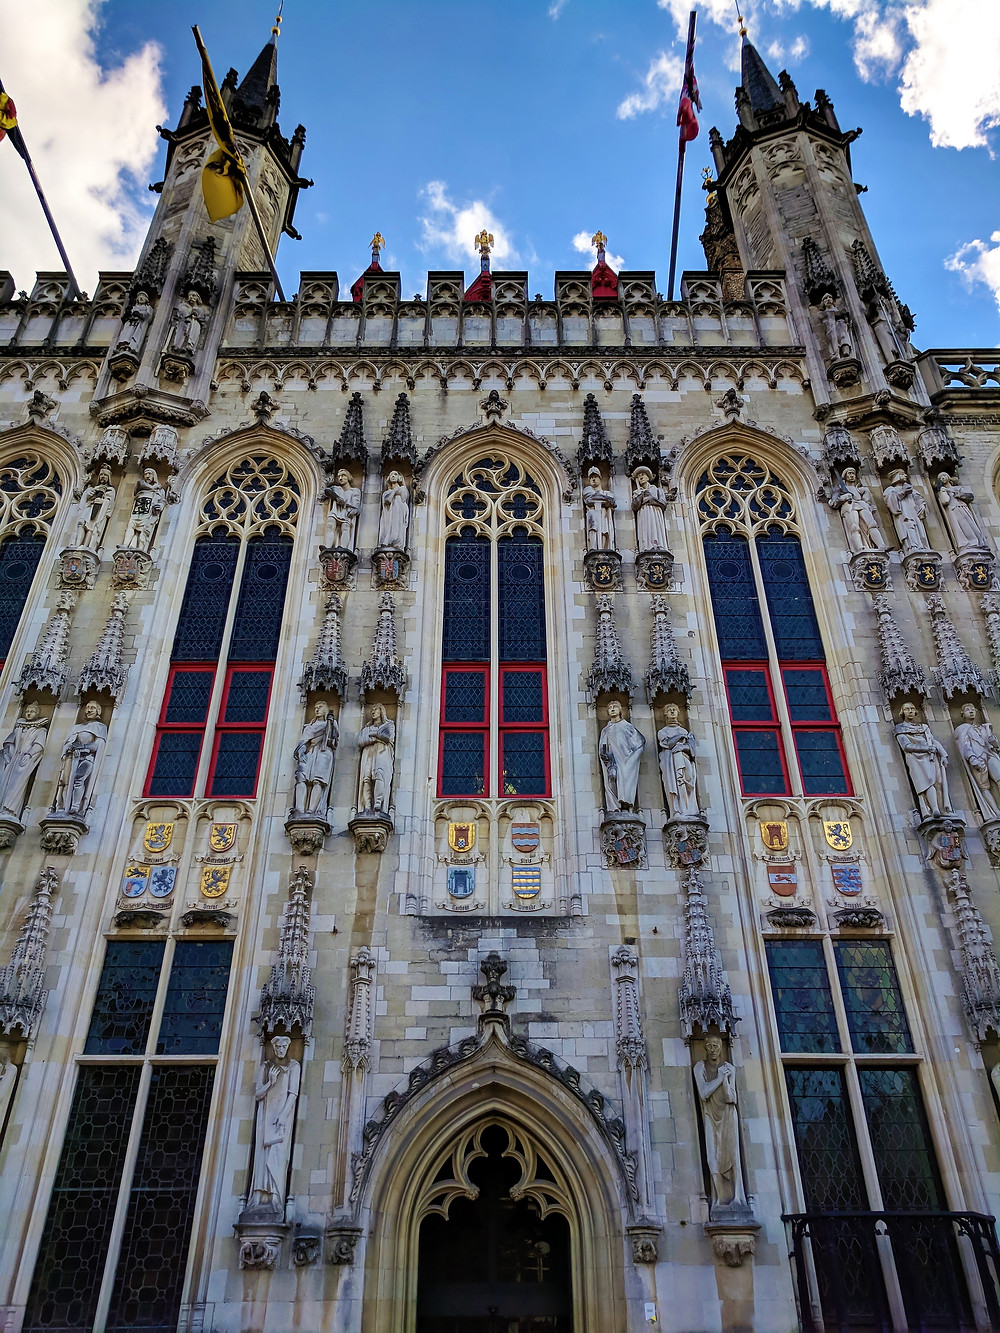 Stadhuis (City Hall), Burg Square, Bruges